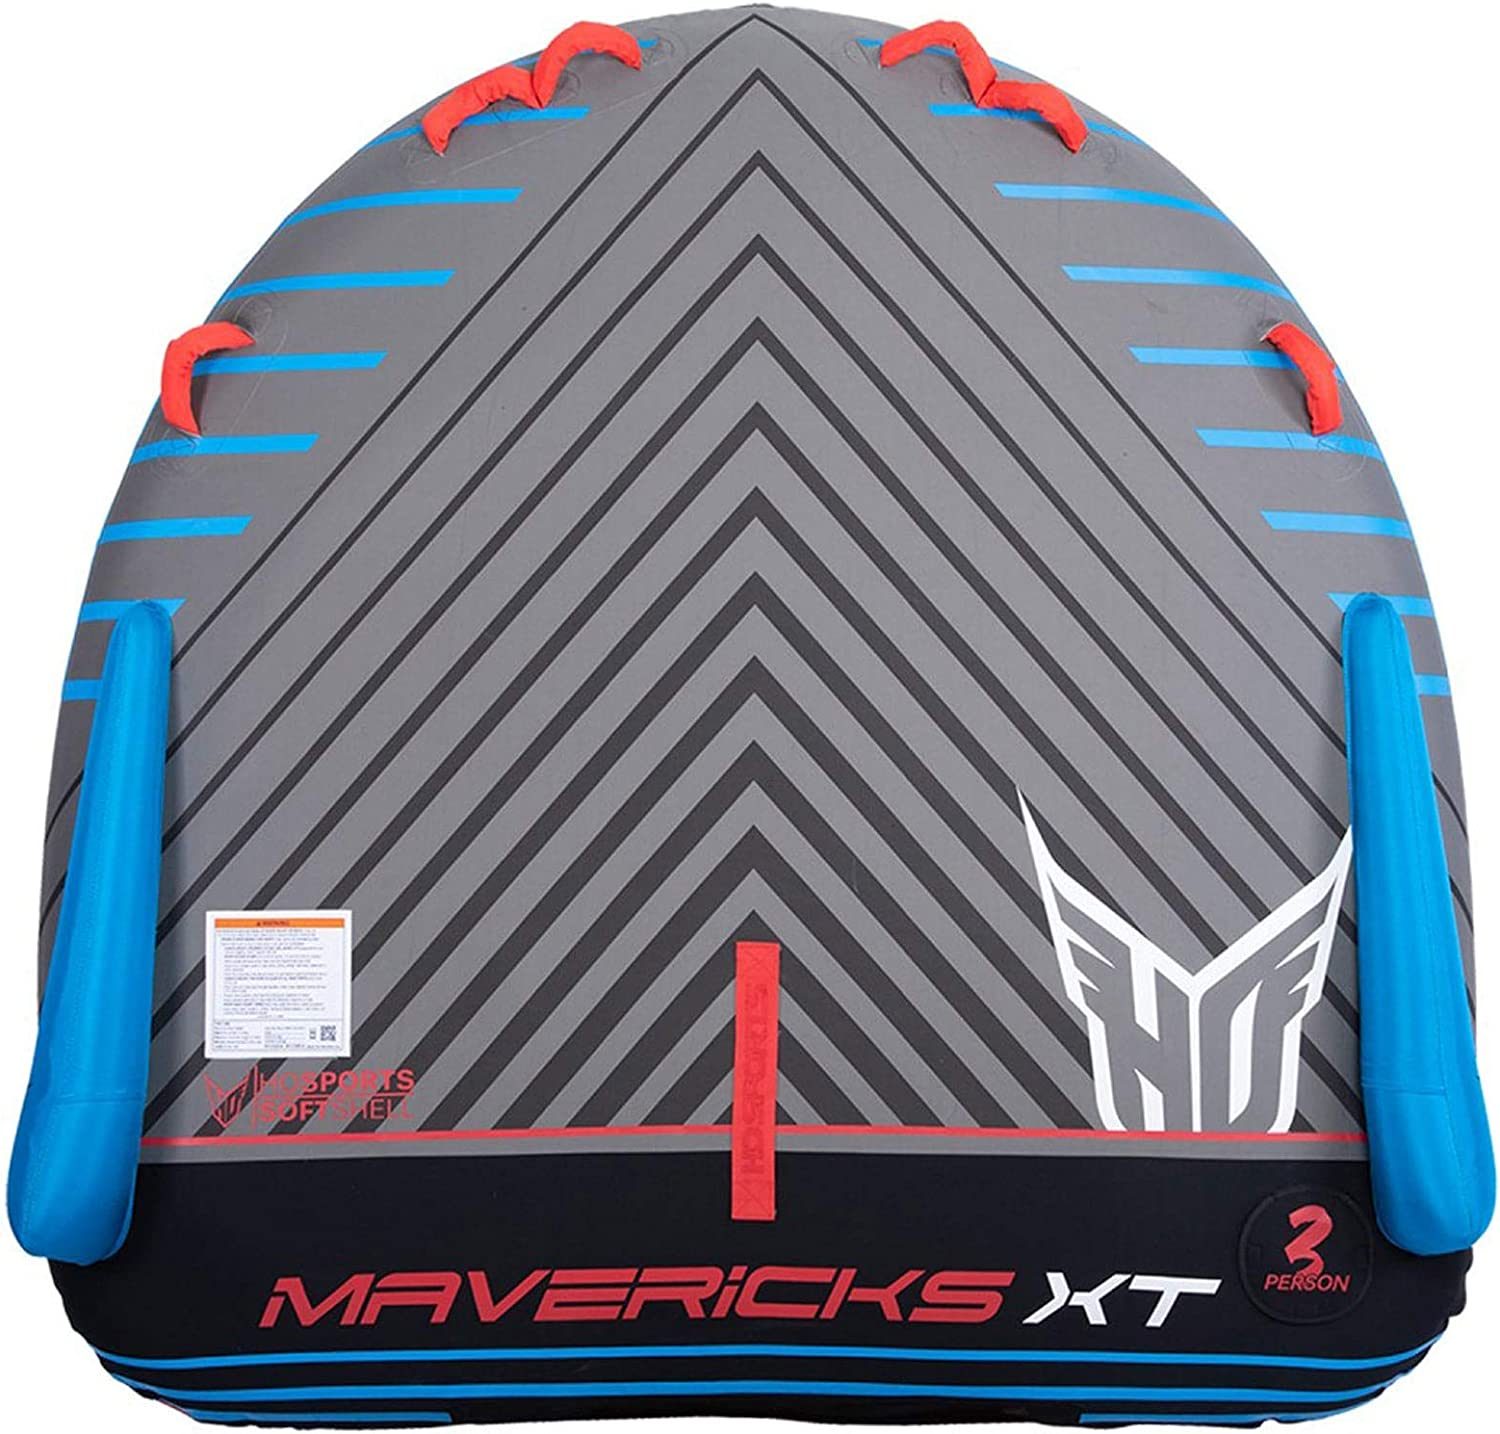 HO Mavericks 3 XT Towable Tube